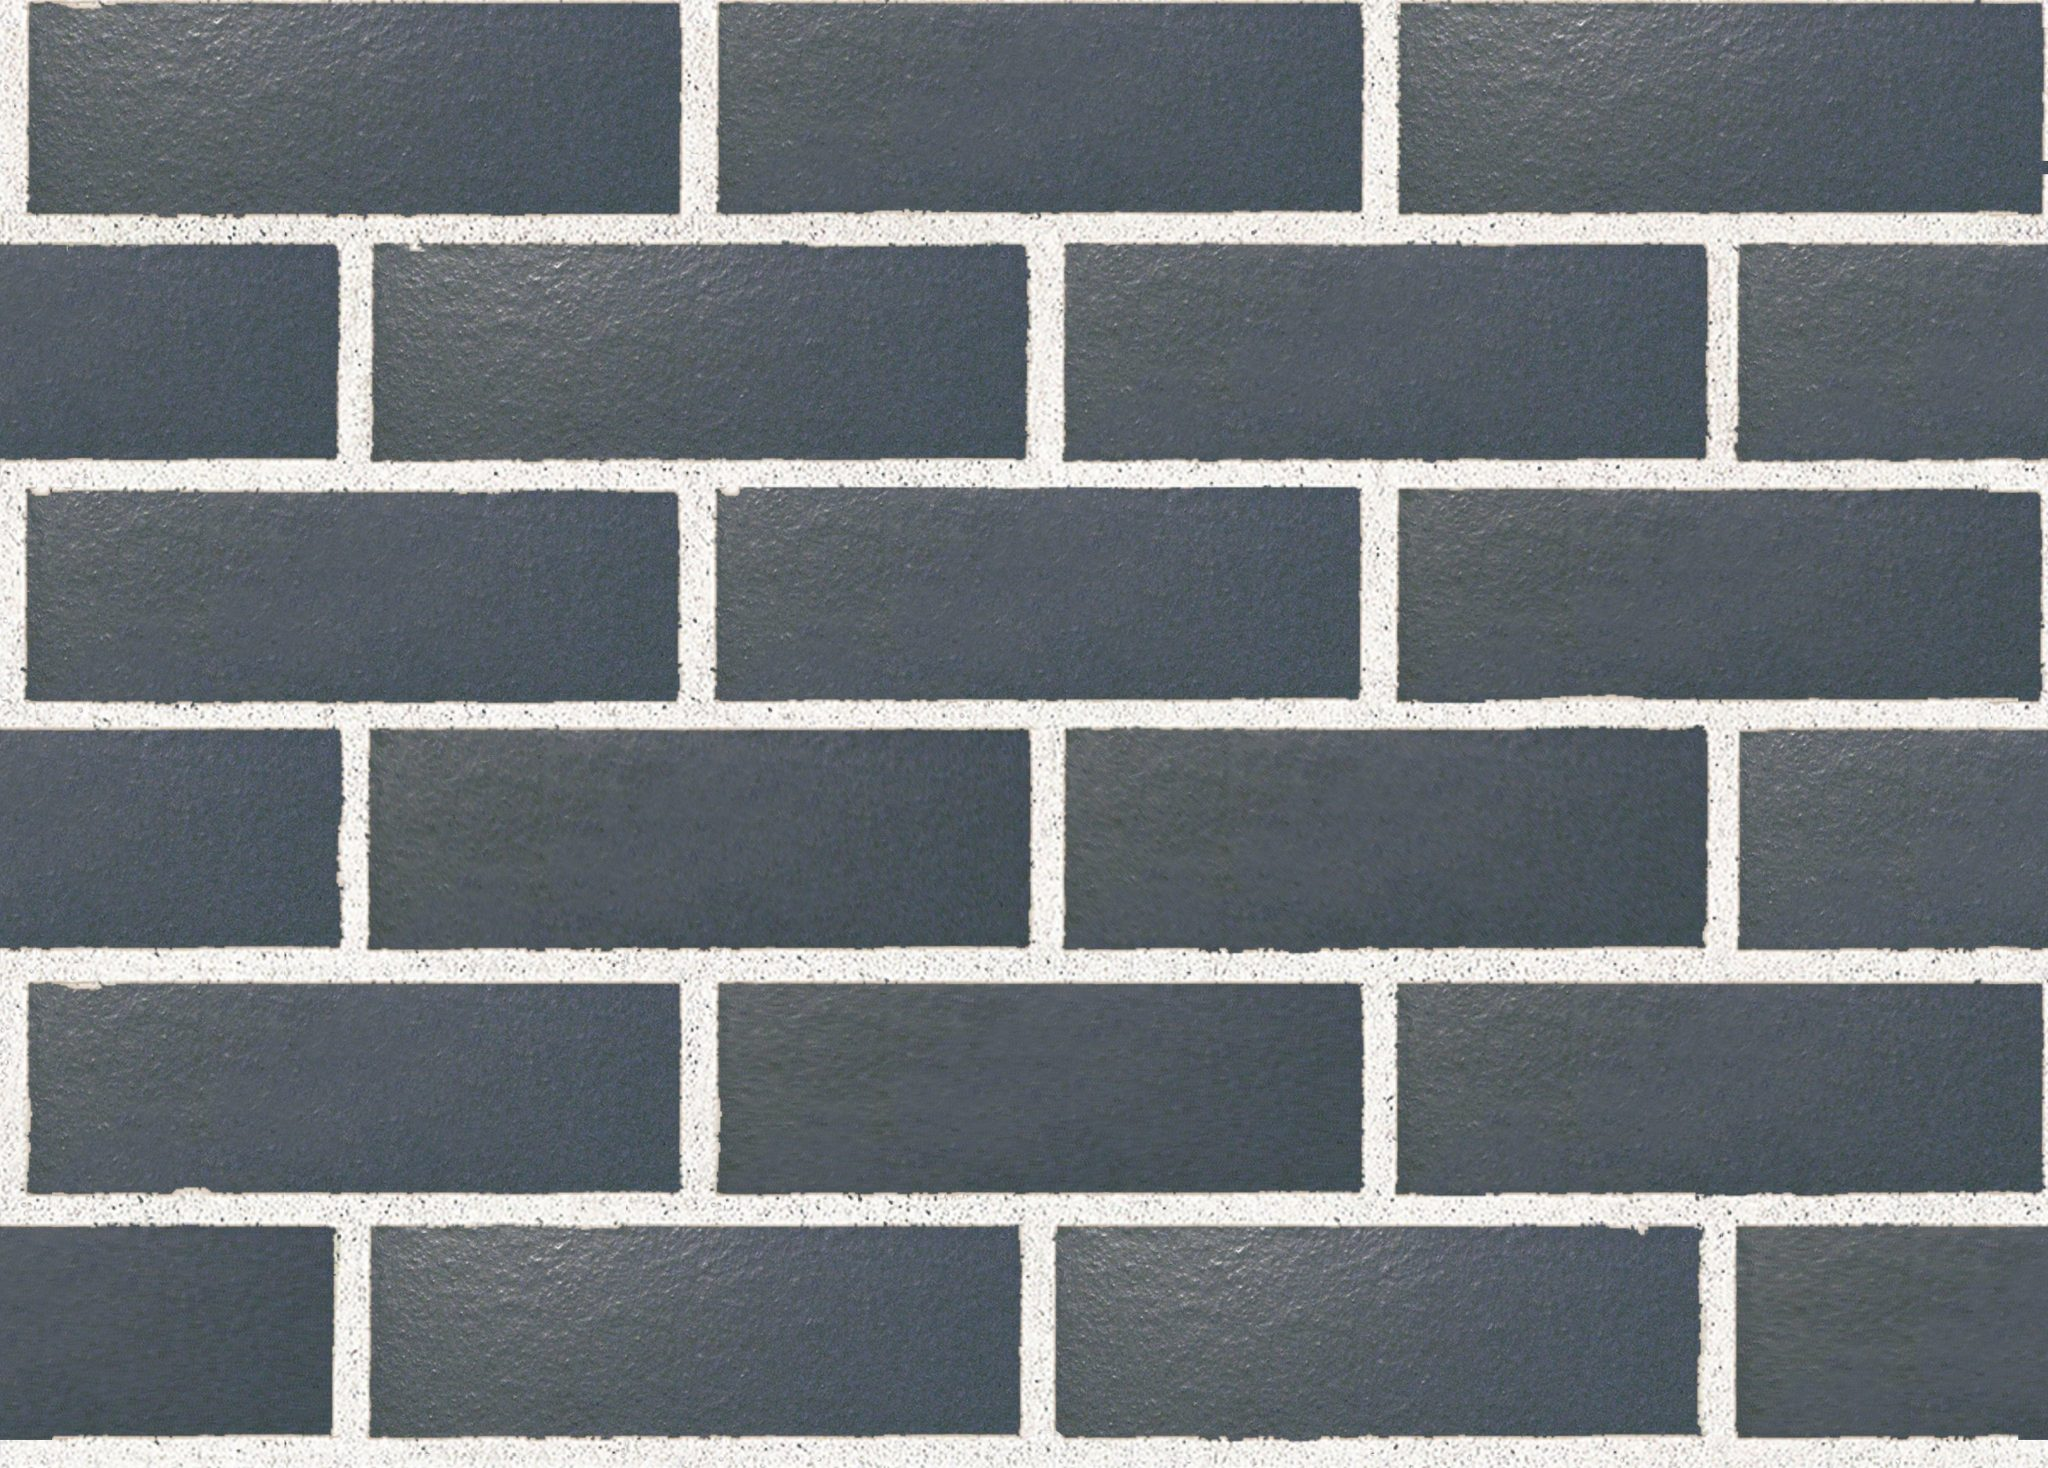 BurlesqueSpecialtyRoyal230x76-110-240 - NSW Bricks